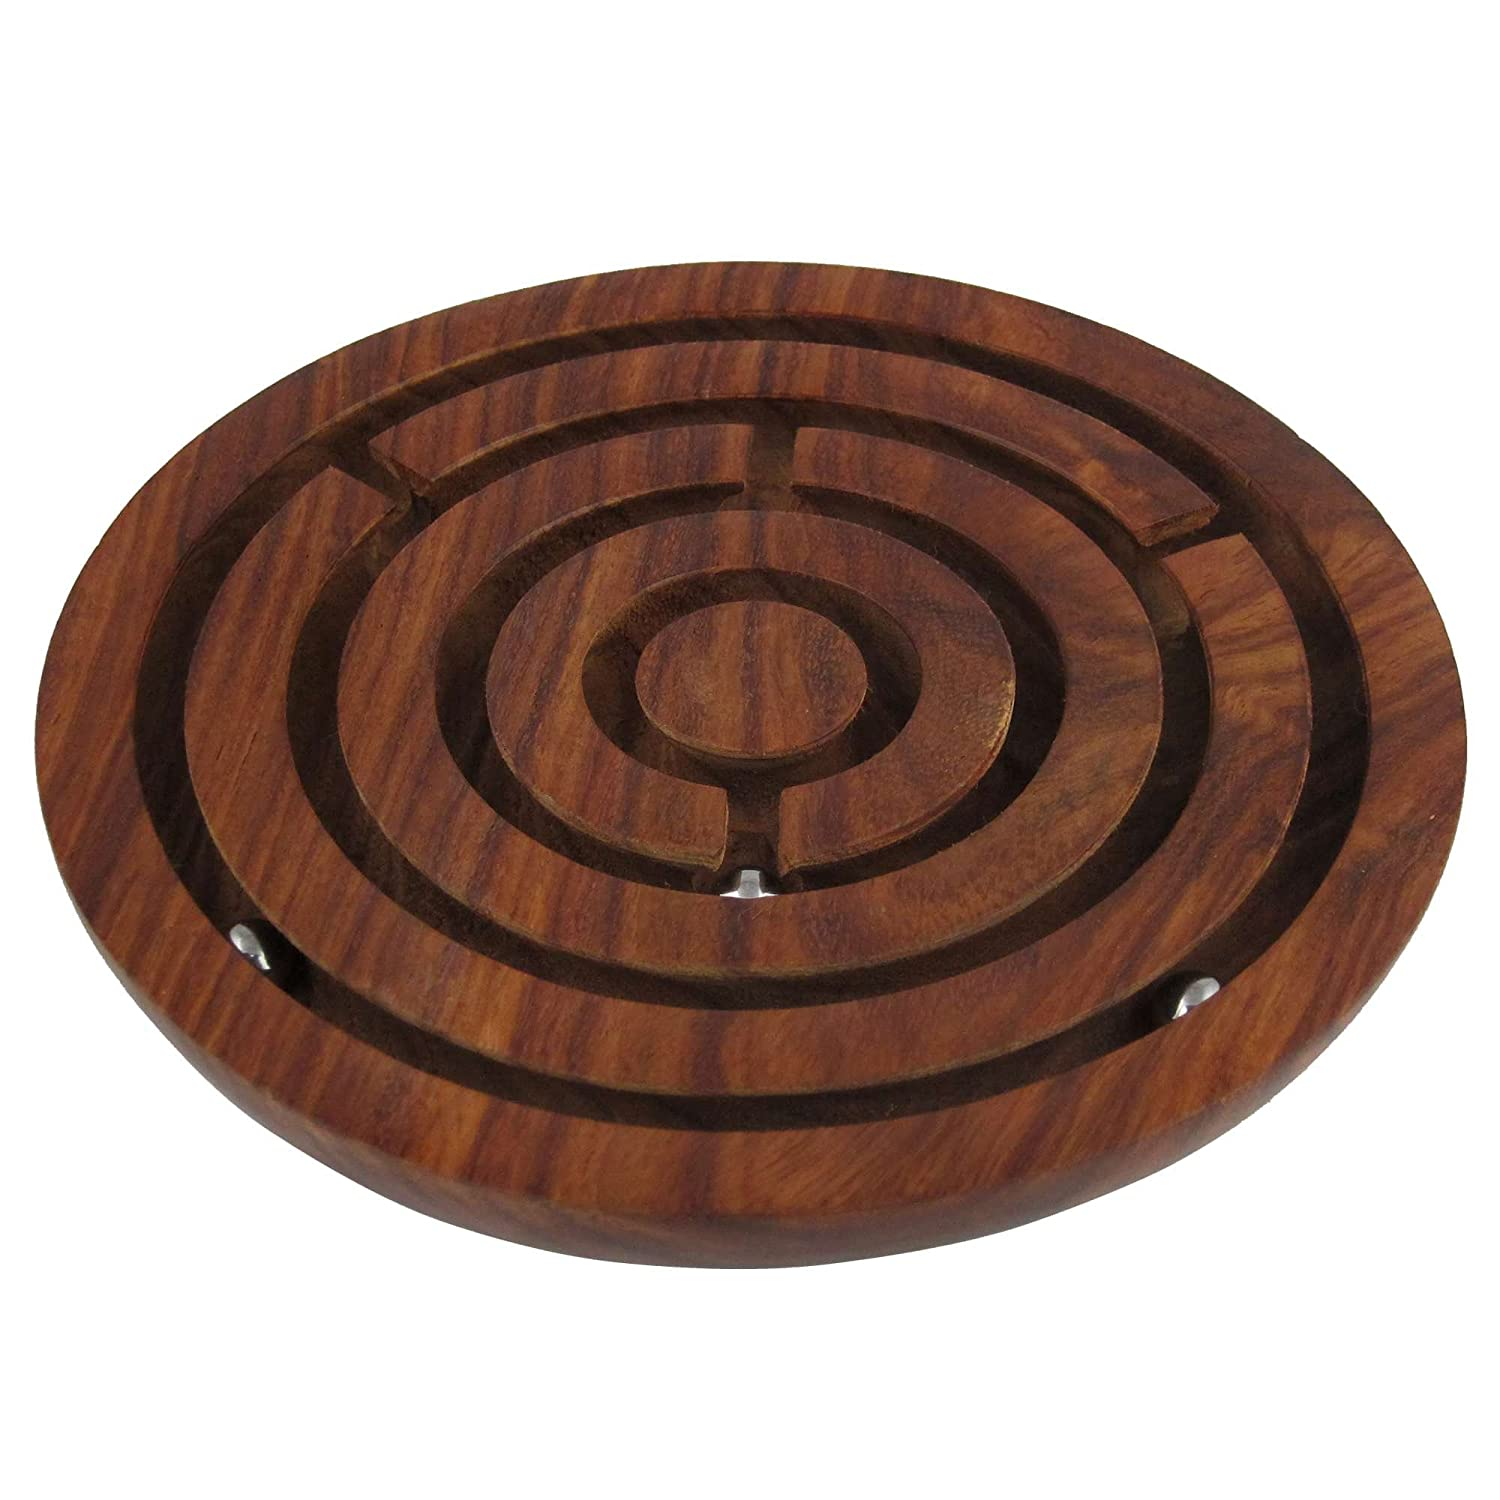 Penguin Home Game Labyrinth, Ball-in-a-Maze Puzzles, Handcrafted in India - Round